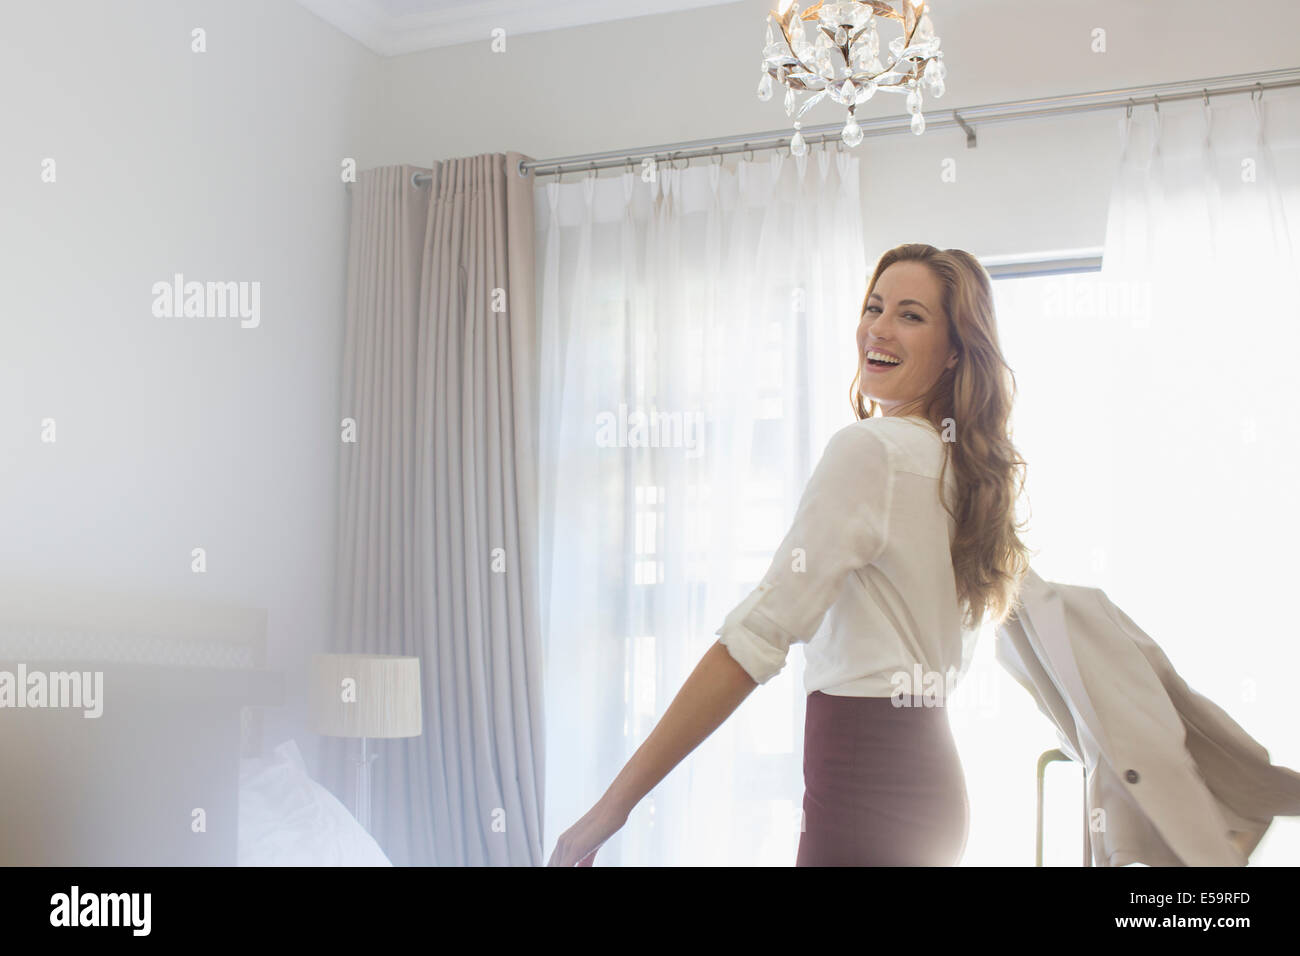 Businesswoman getting dressed in hotel room - Stock Image